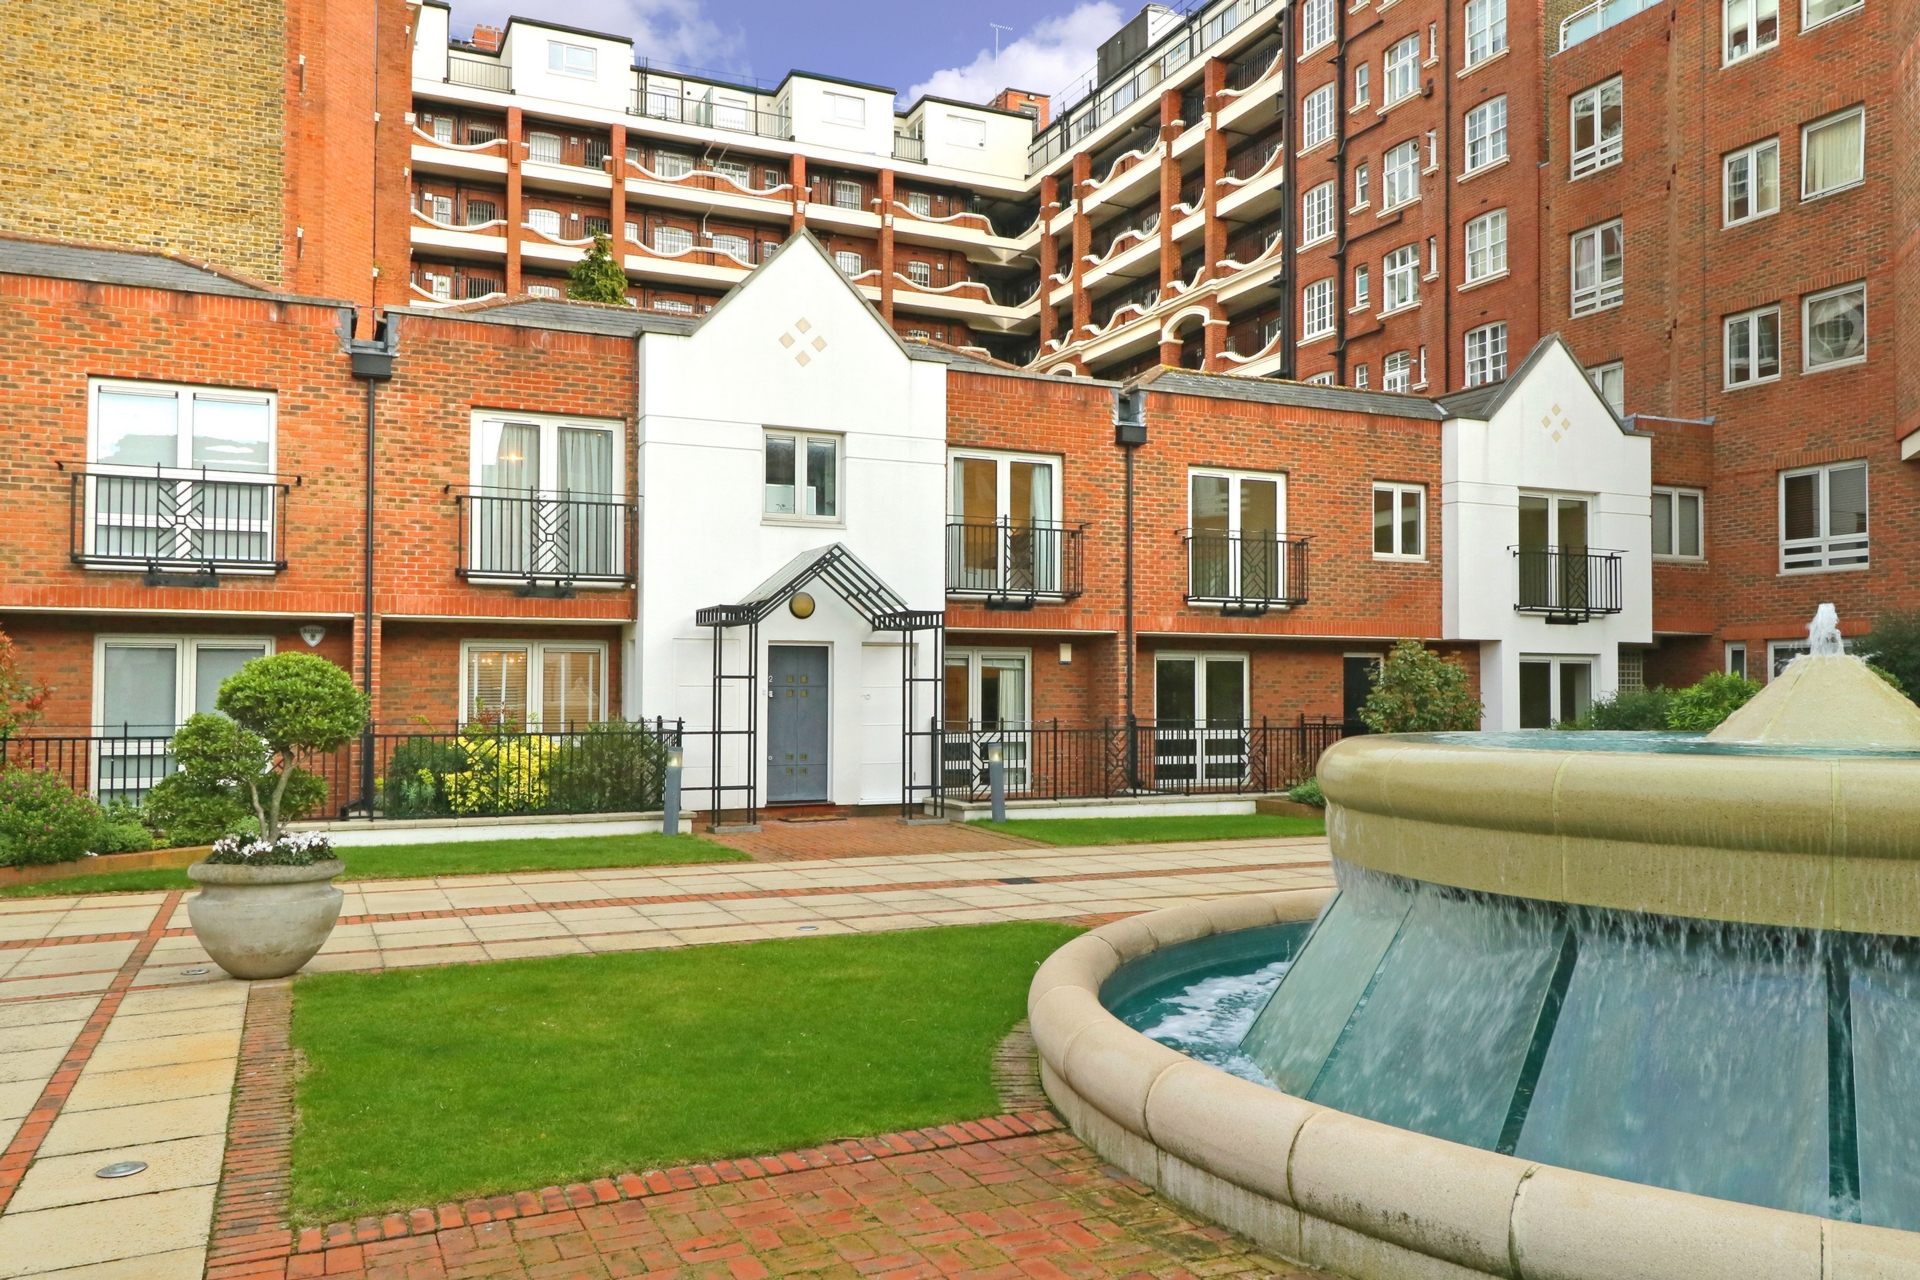 Squire Gardens  St Johns Wood  London  NW8